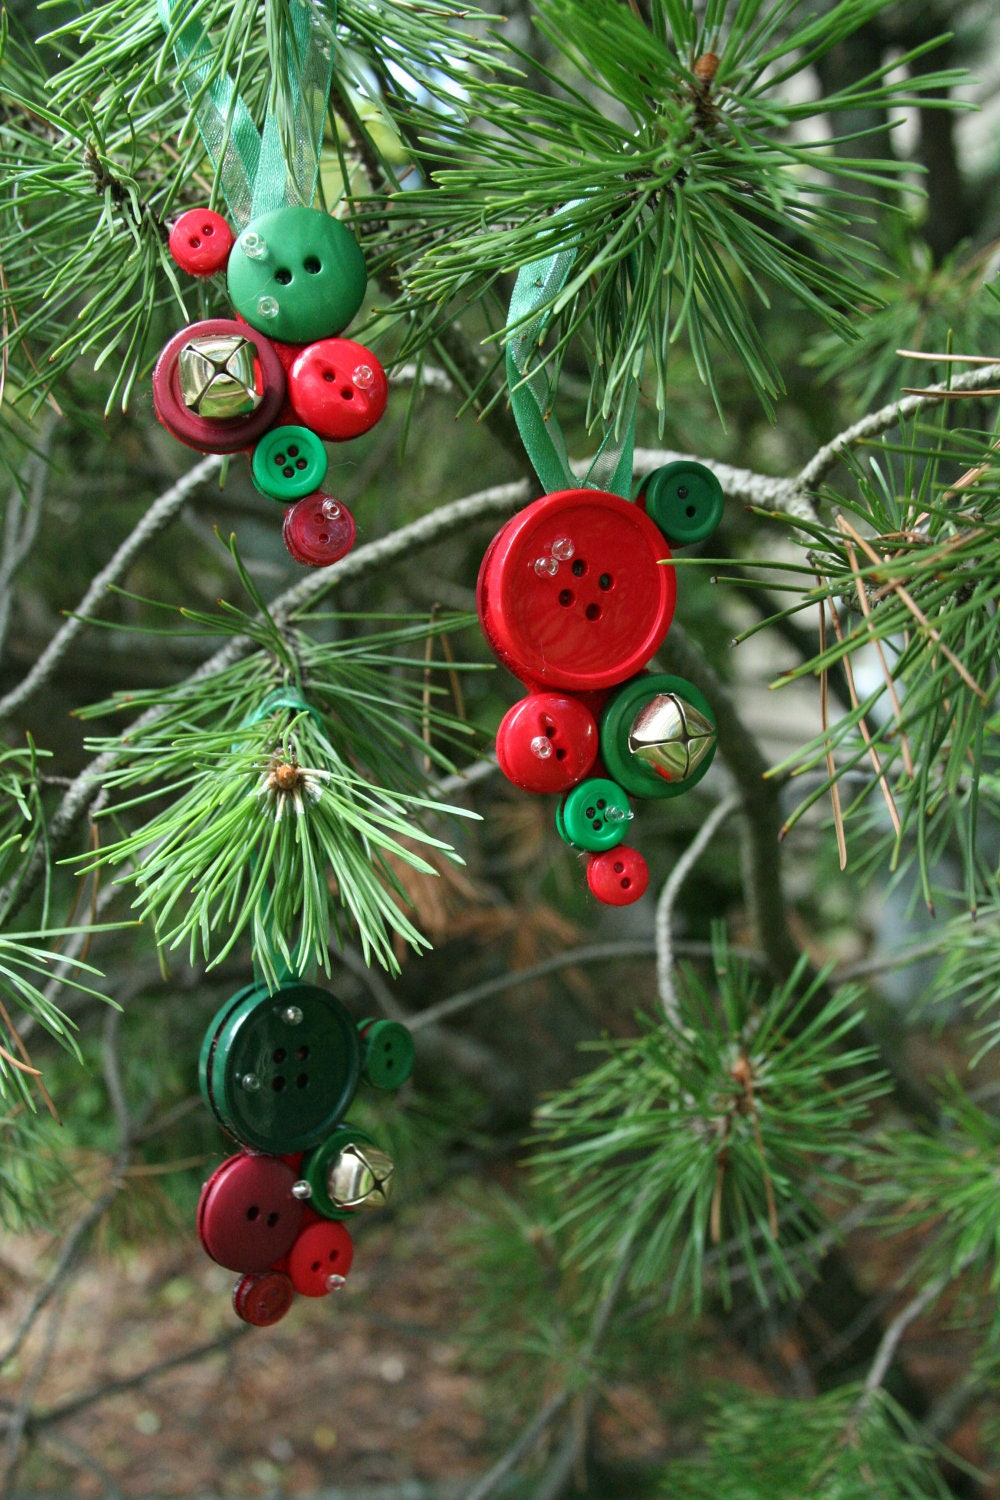 Christmas button decorations made with jingle bells and